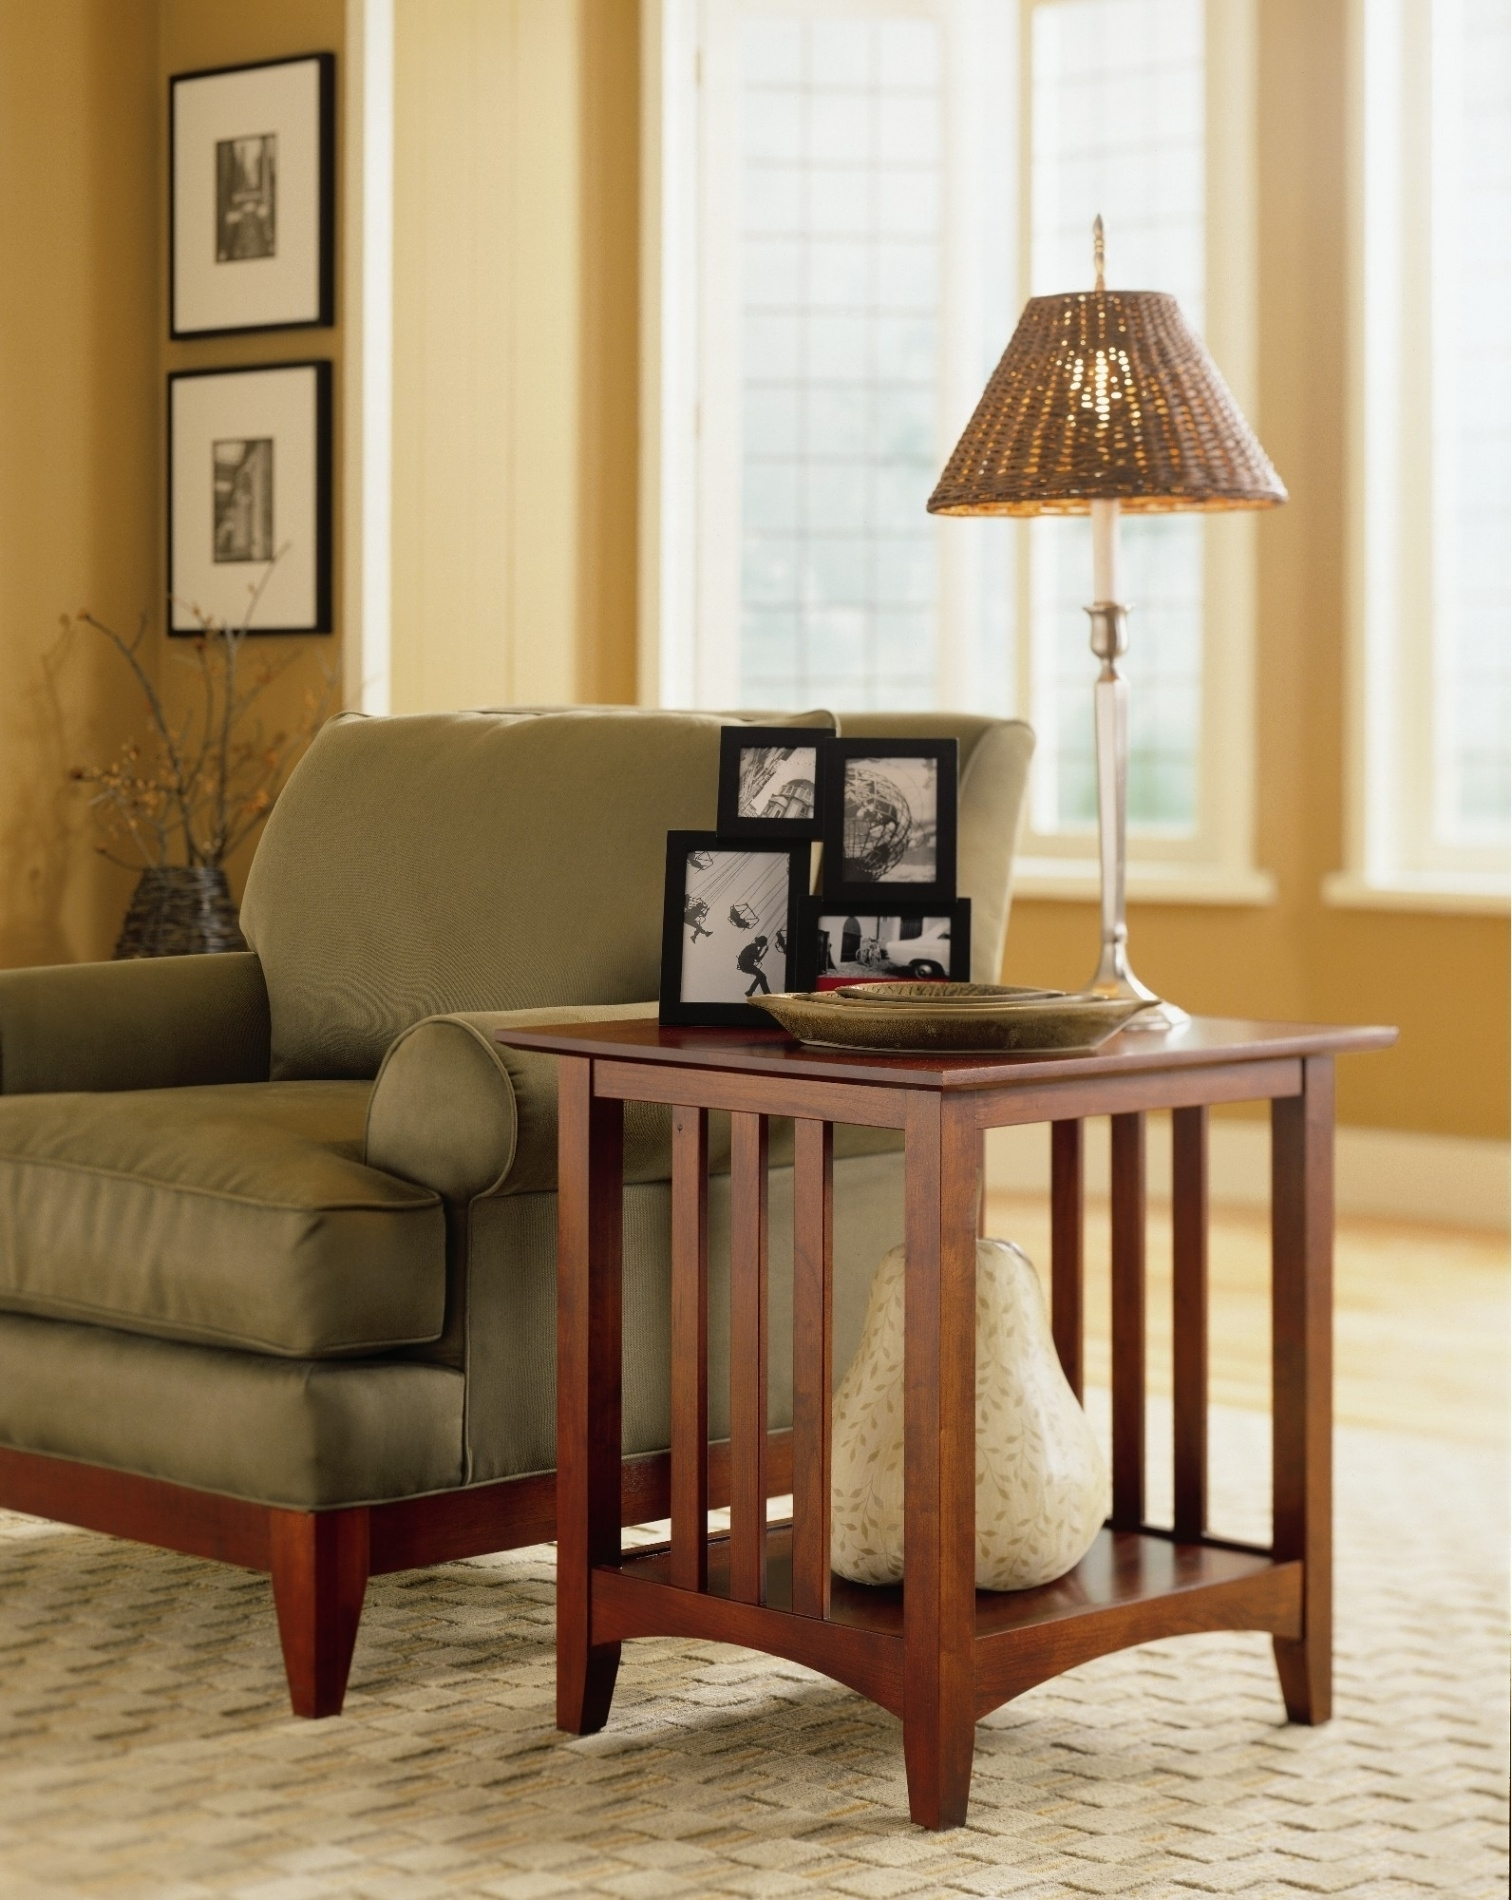 End Table Lamps For Living Room Home Combo, Living Room End Table Within Living Room End Table Lamps (#5 of 15)